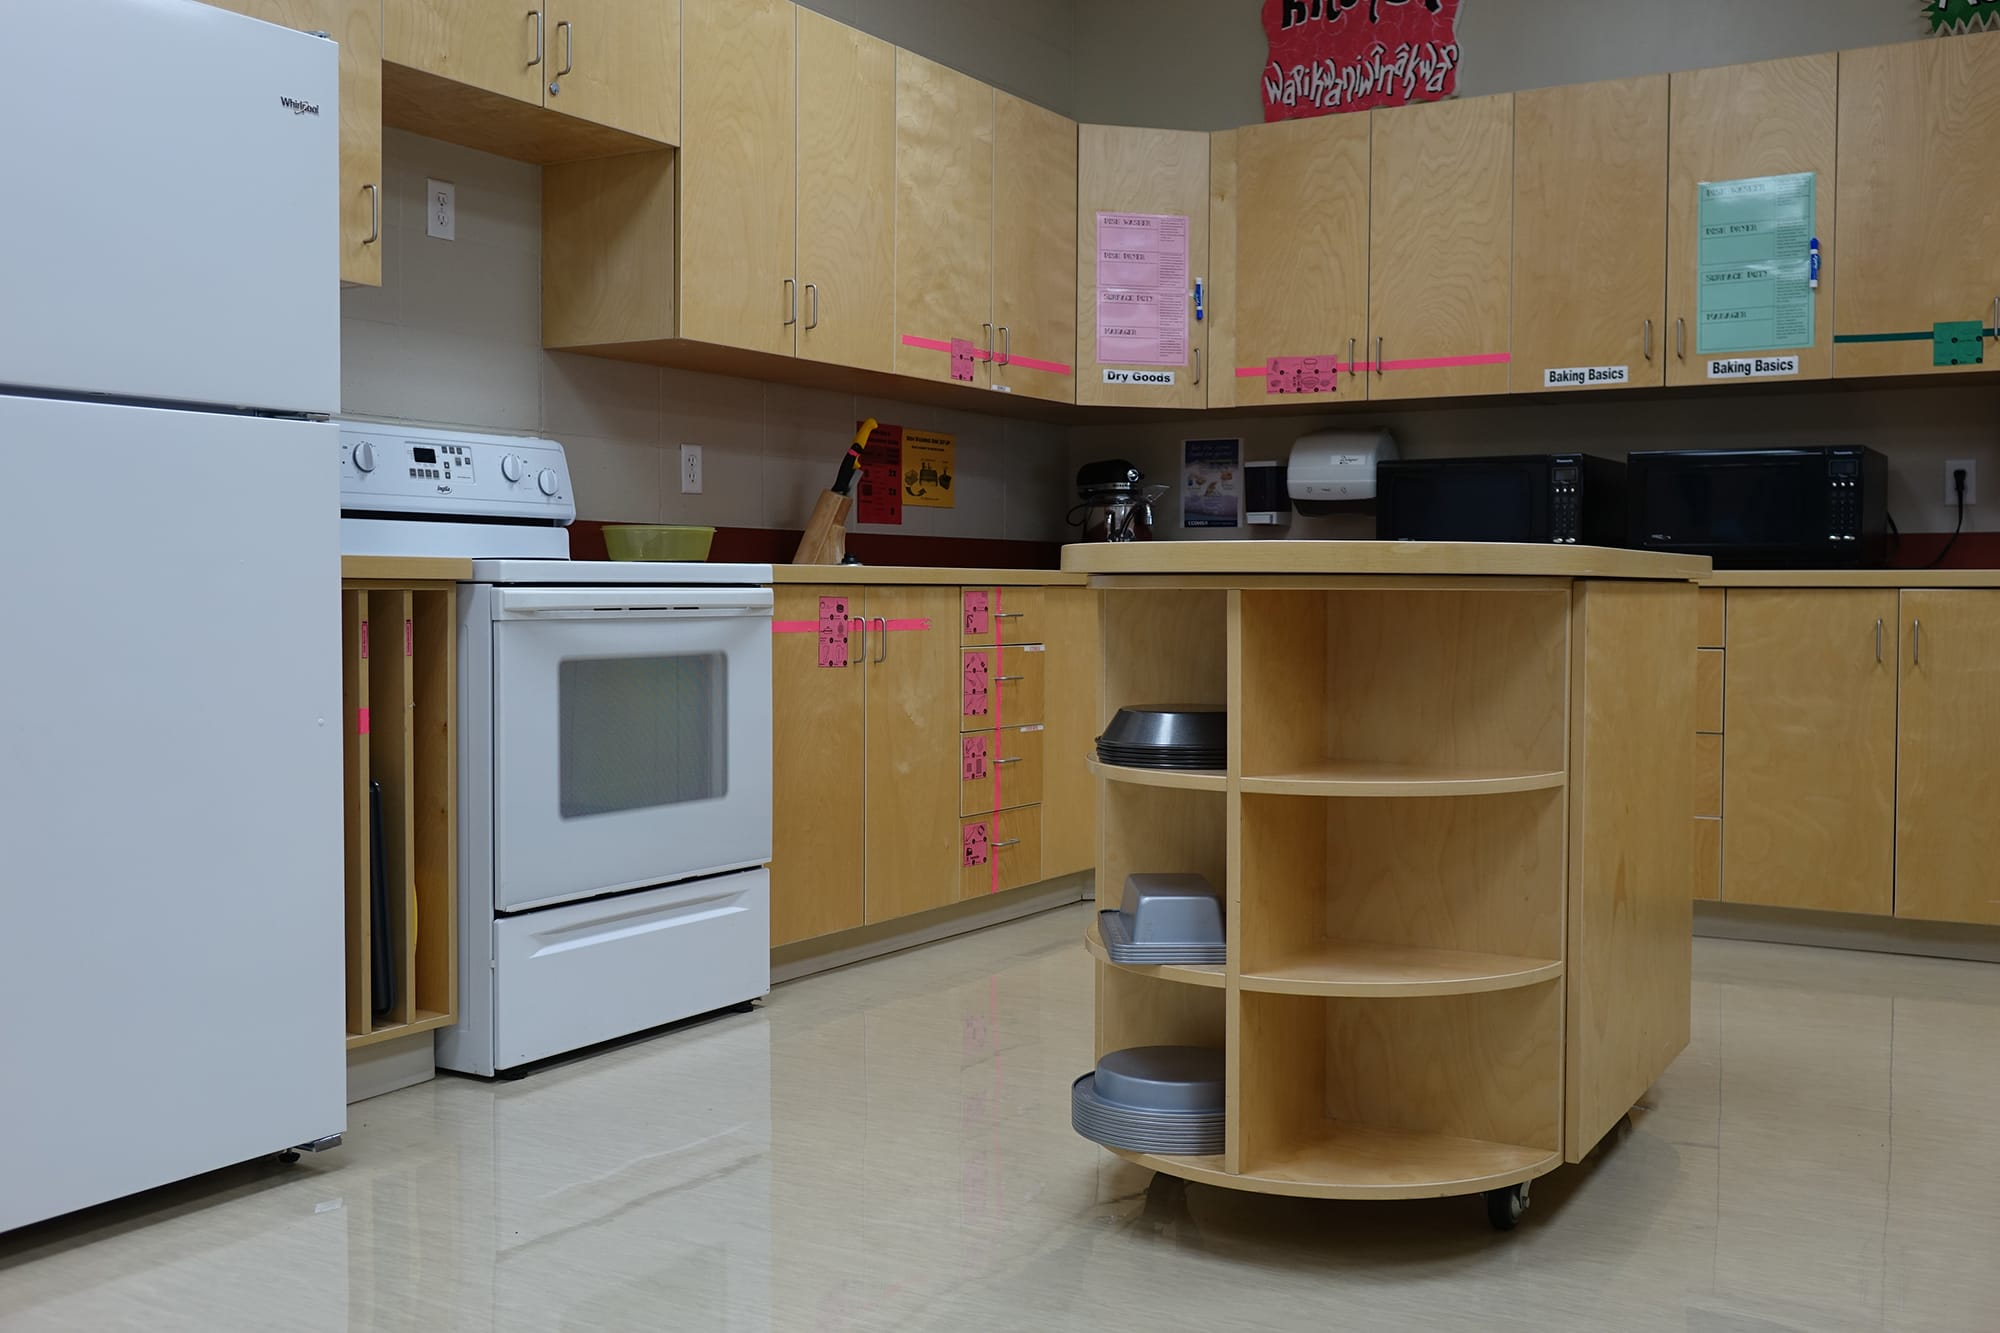 Derek Taylor Public School kitchen lab